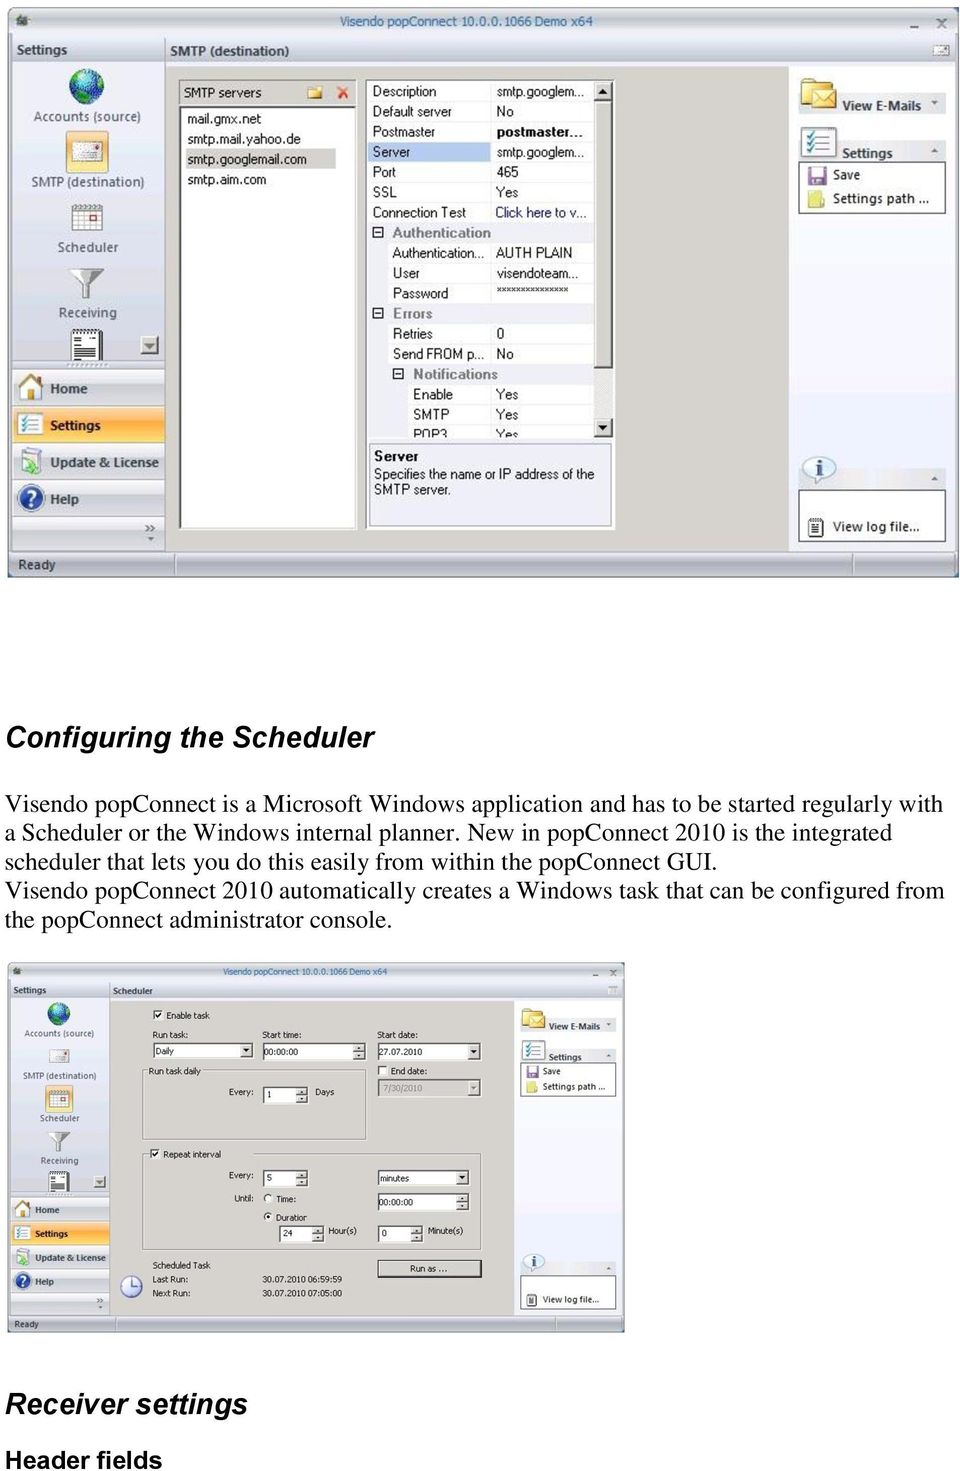 New in popconnect 2010 is the integrated scheduler that lets you do this easily from within the popconnect